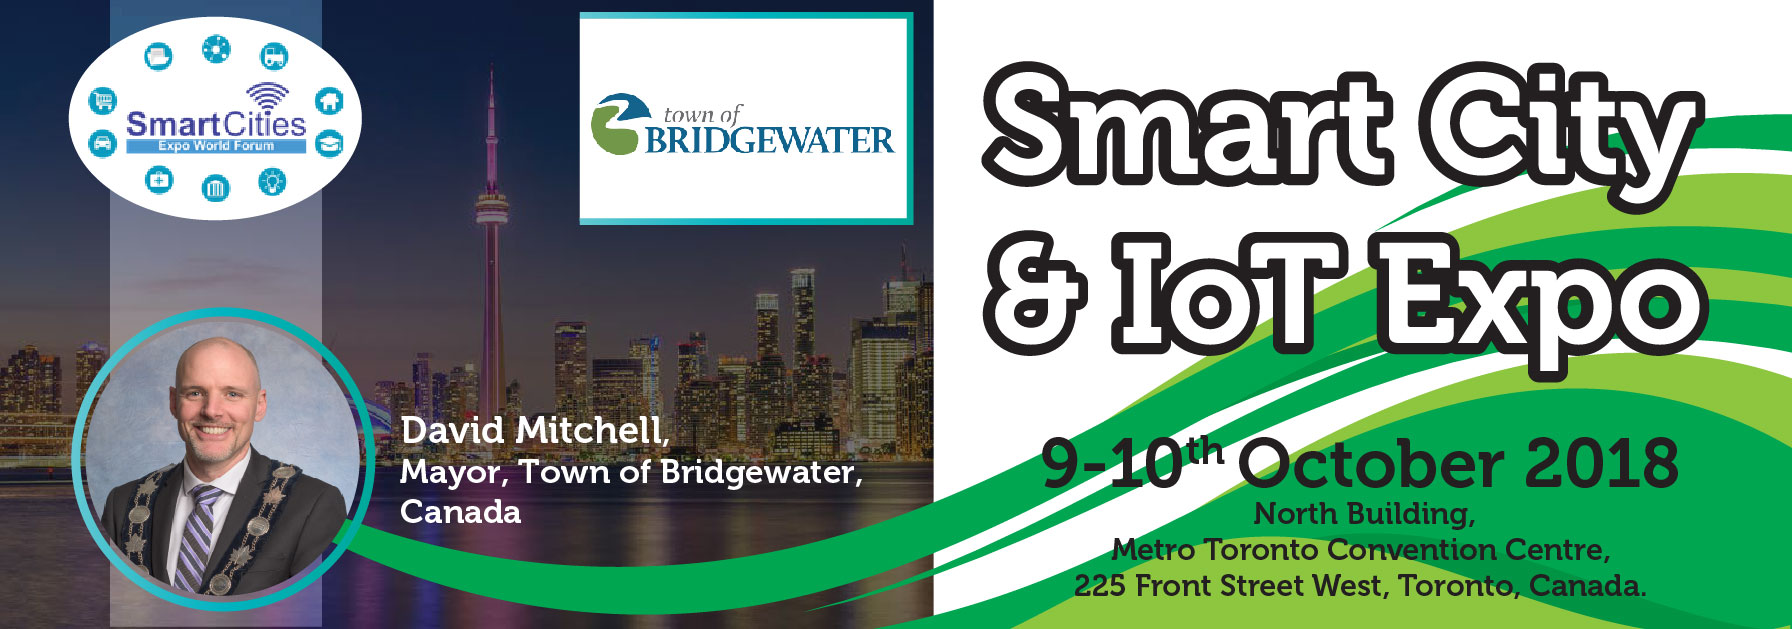 Smart Cities Expo World Forum is pleased to announce the presence of David Mitchell, Mayor, Town of Bridgewater, Canada at Smart City & IoT Expo 9-10 Oct. 2018, Metro Toronto Convention Center, Toronto, Canada. Register Now: www.SmartCitiesExpoWorldForum.ca